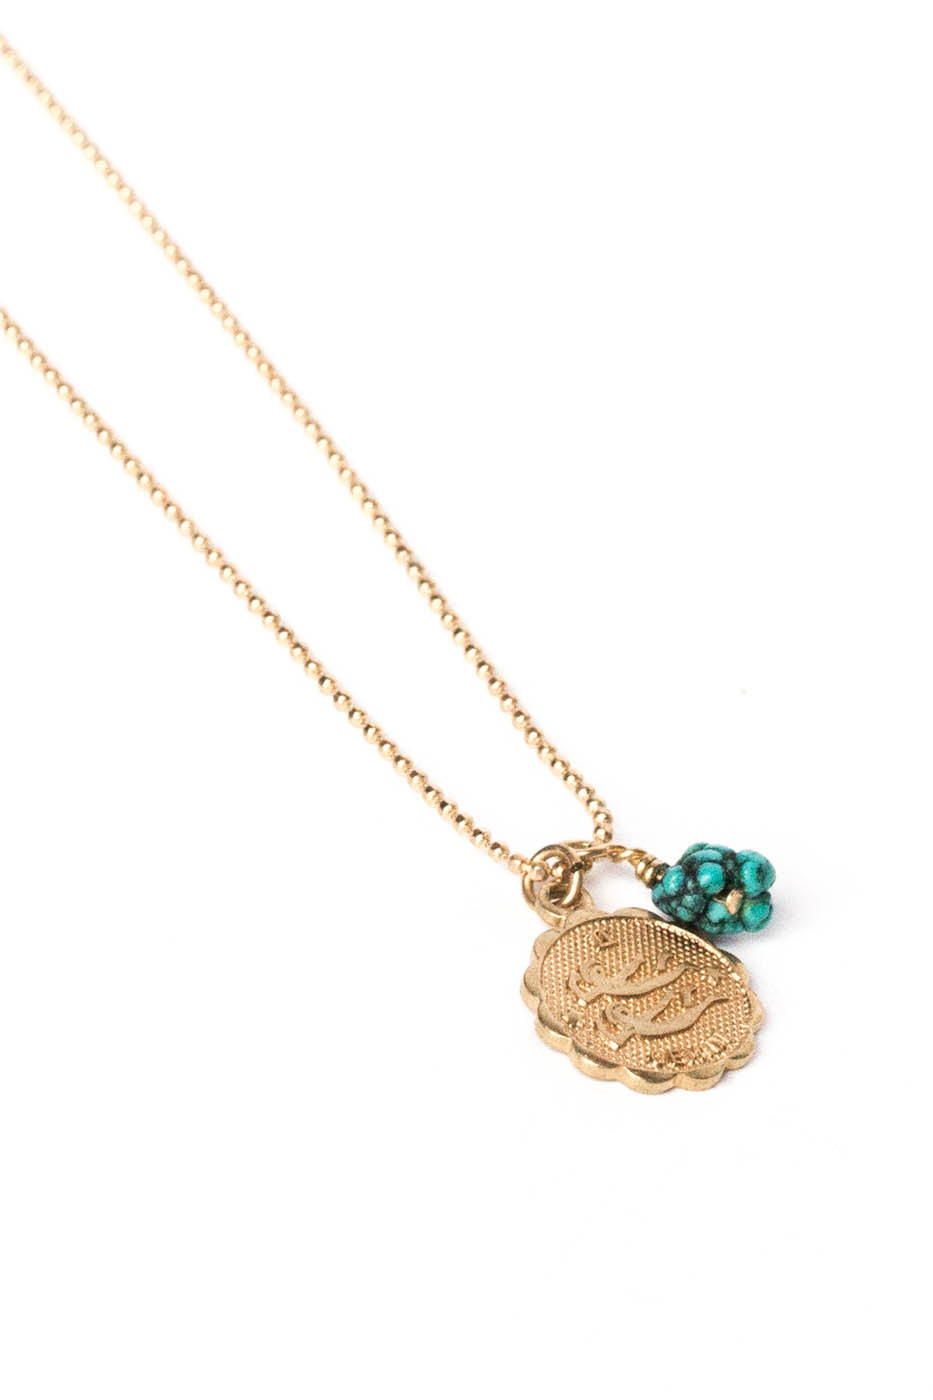 Zodiac Charm Necklace w/ Turquoise Nugget on Gold Ball Chain